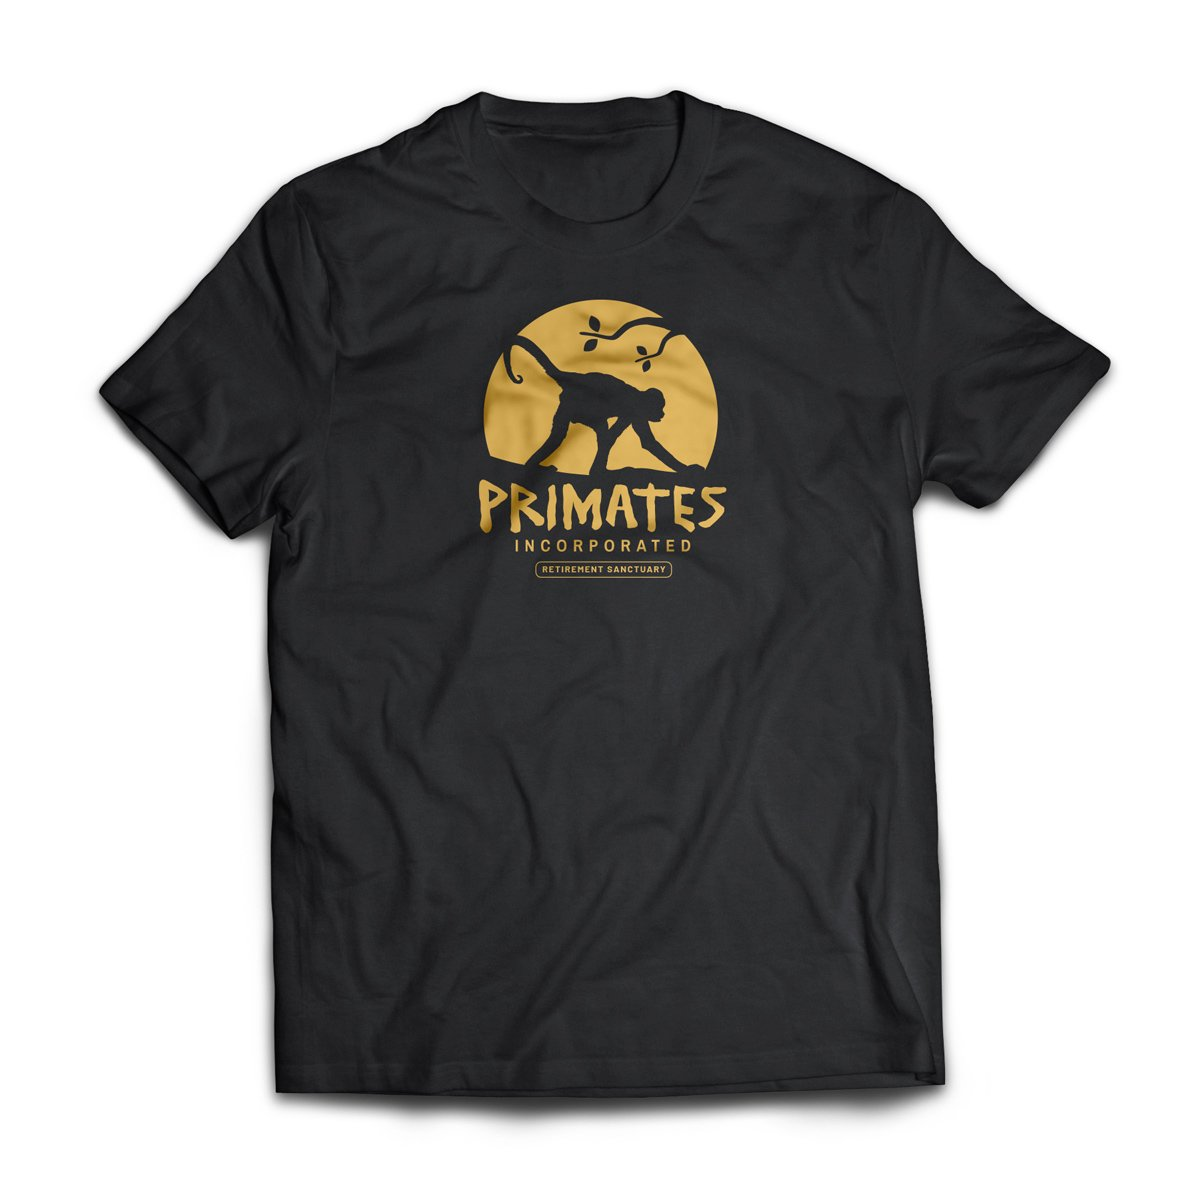 Primates Incorporated sun tshirt